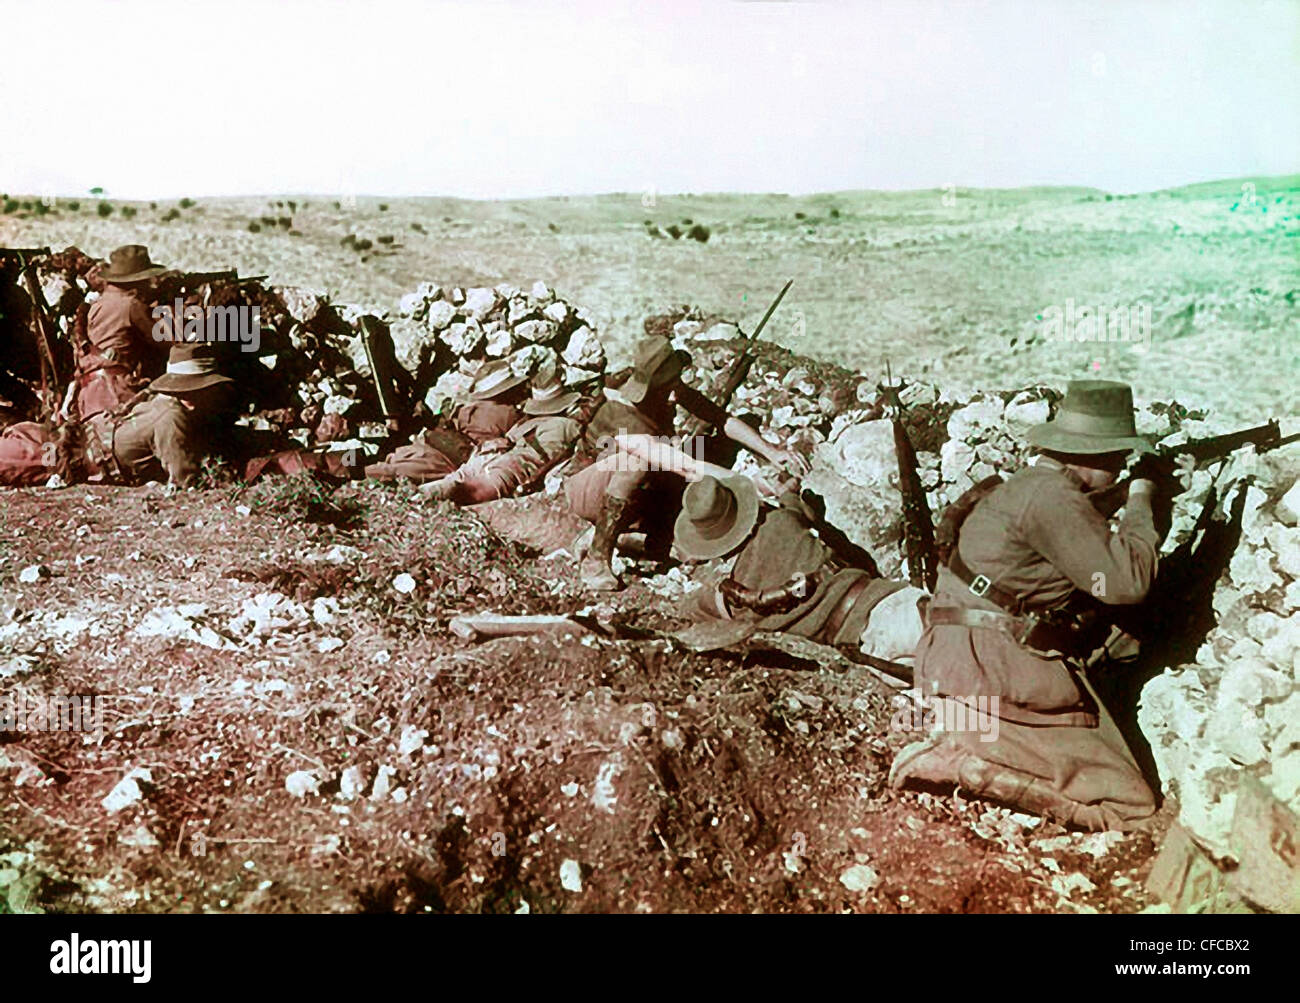 Soldiers, Australian, Light Horse, Regiment, front line, barricades, Nalin, Ottoman Empire, Middle East, World War - Stock Image